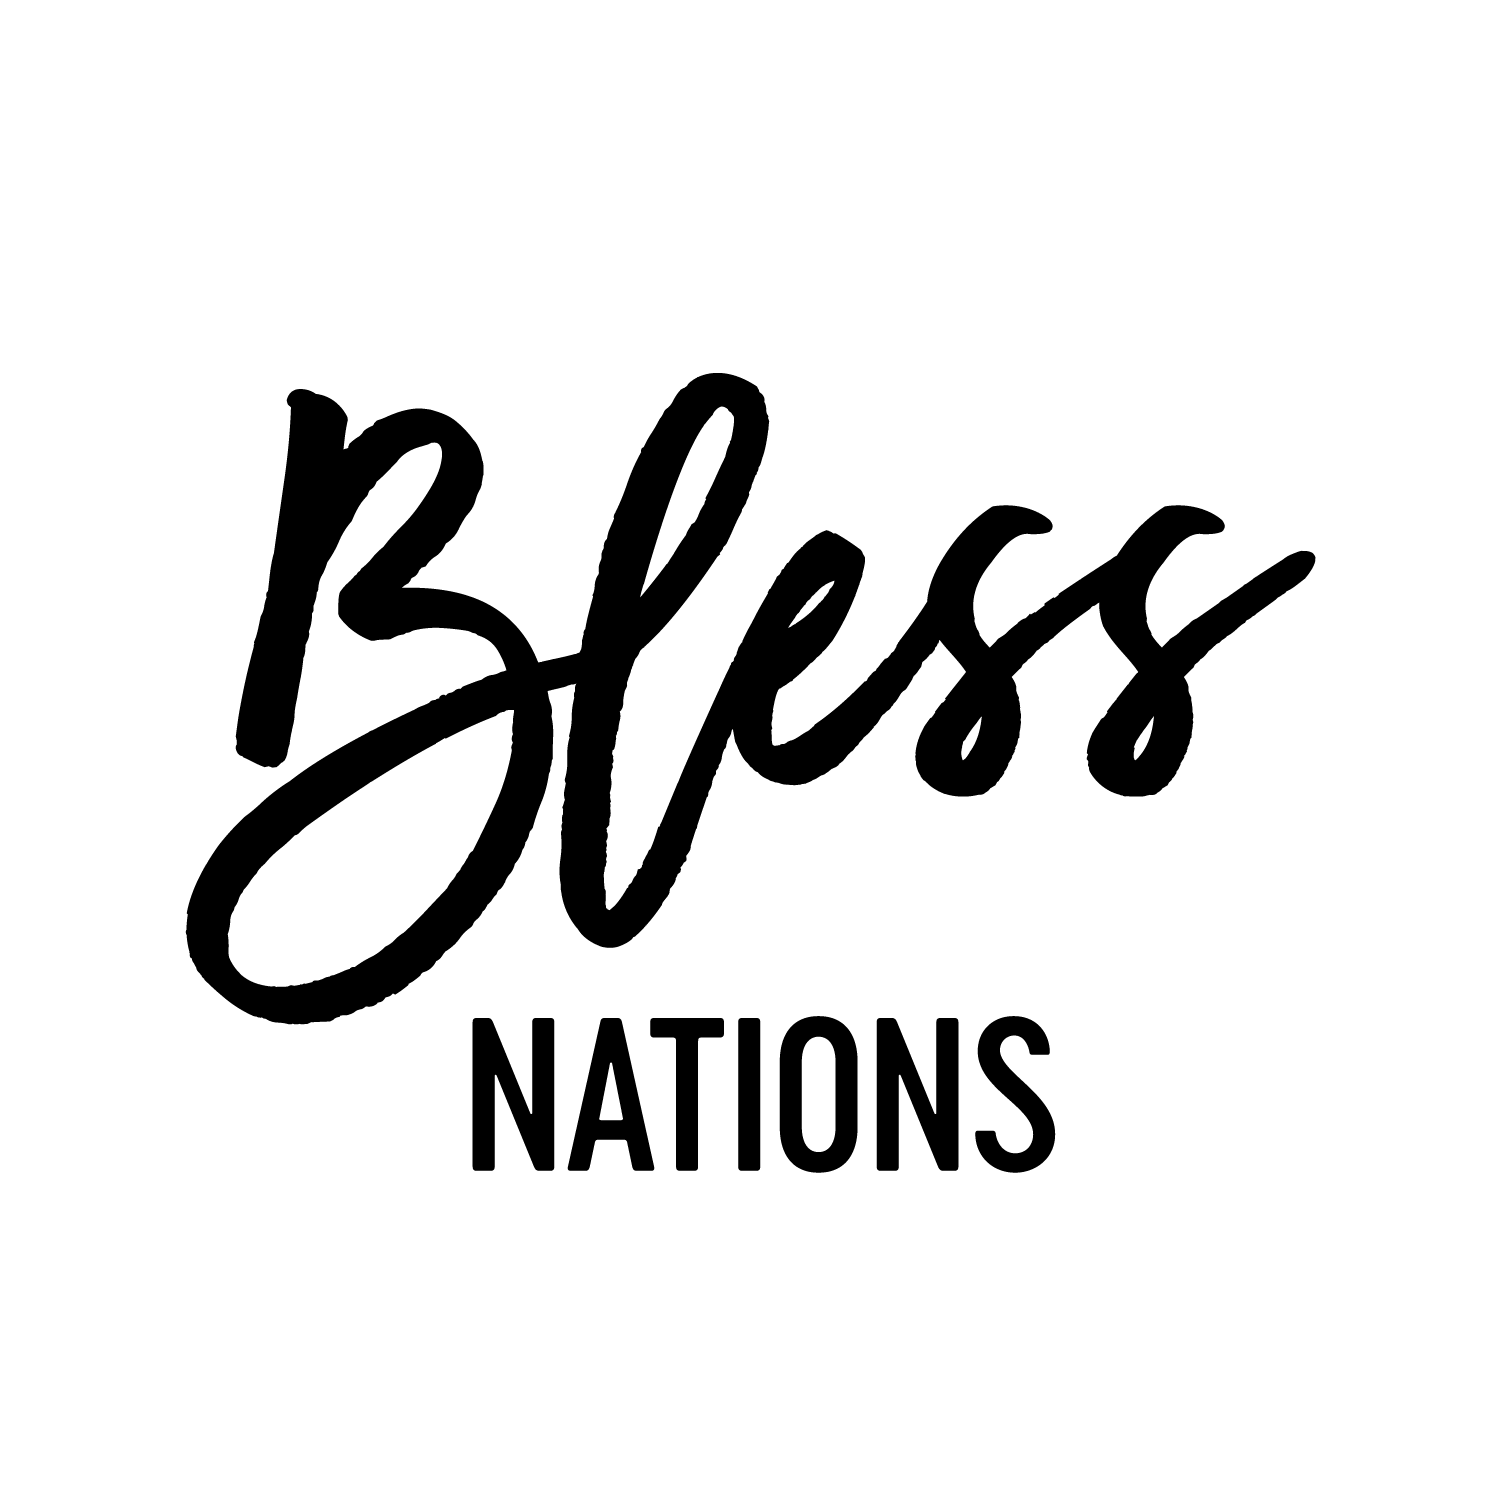 Blessnations.ch